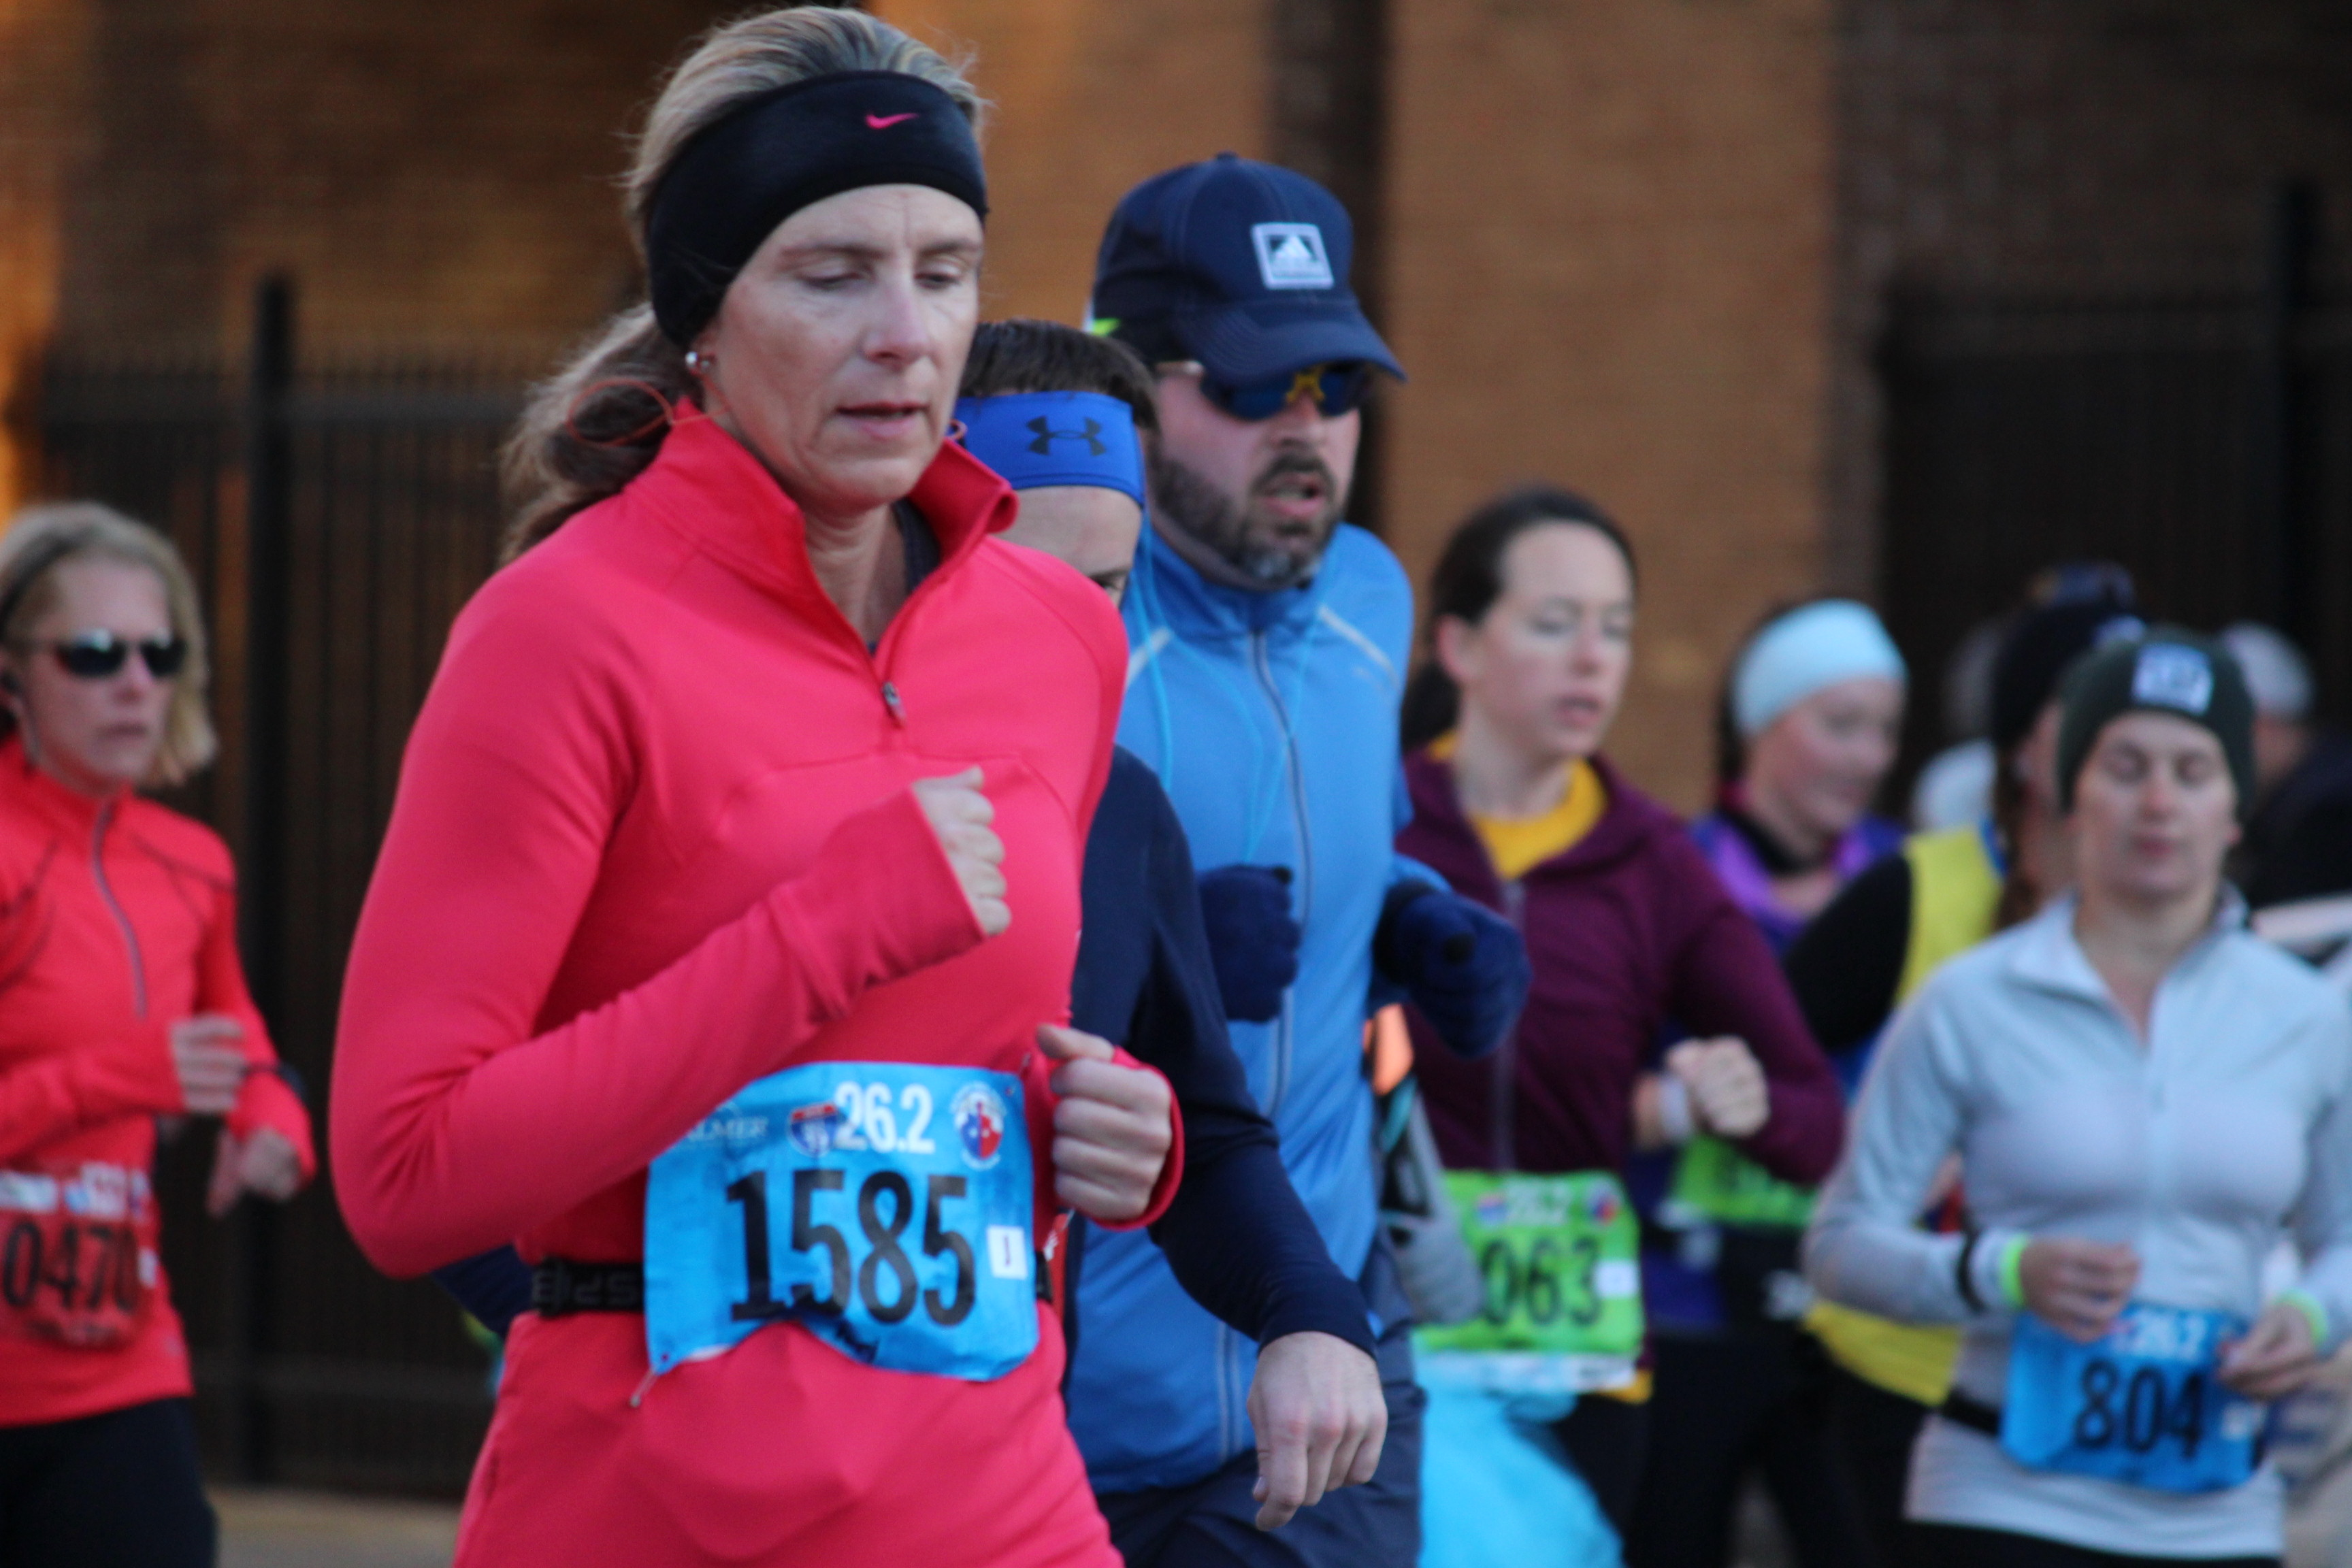 Runners during the 2014 Detroit Free Press Marathon. (Photo by Adelle Loiselle)